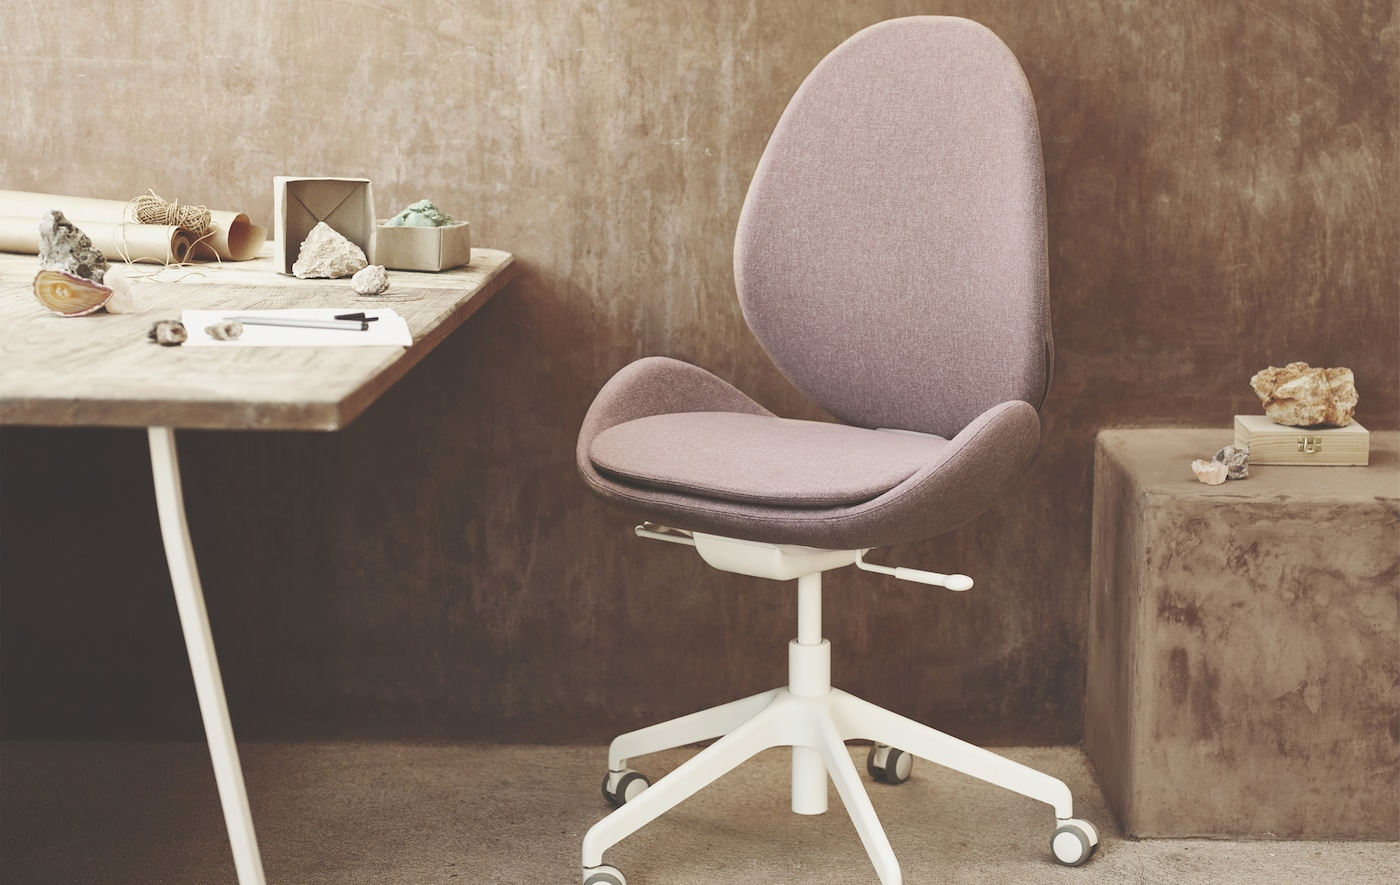 The pink and white HATTEFJÄLL office chair in a workspace.